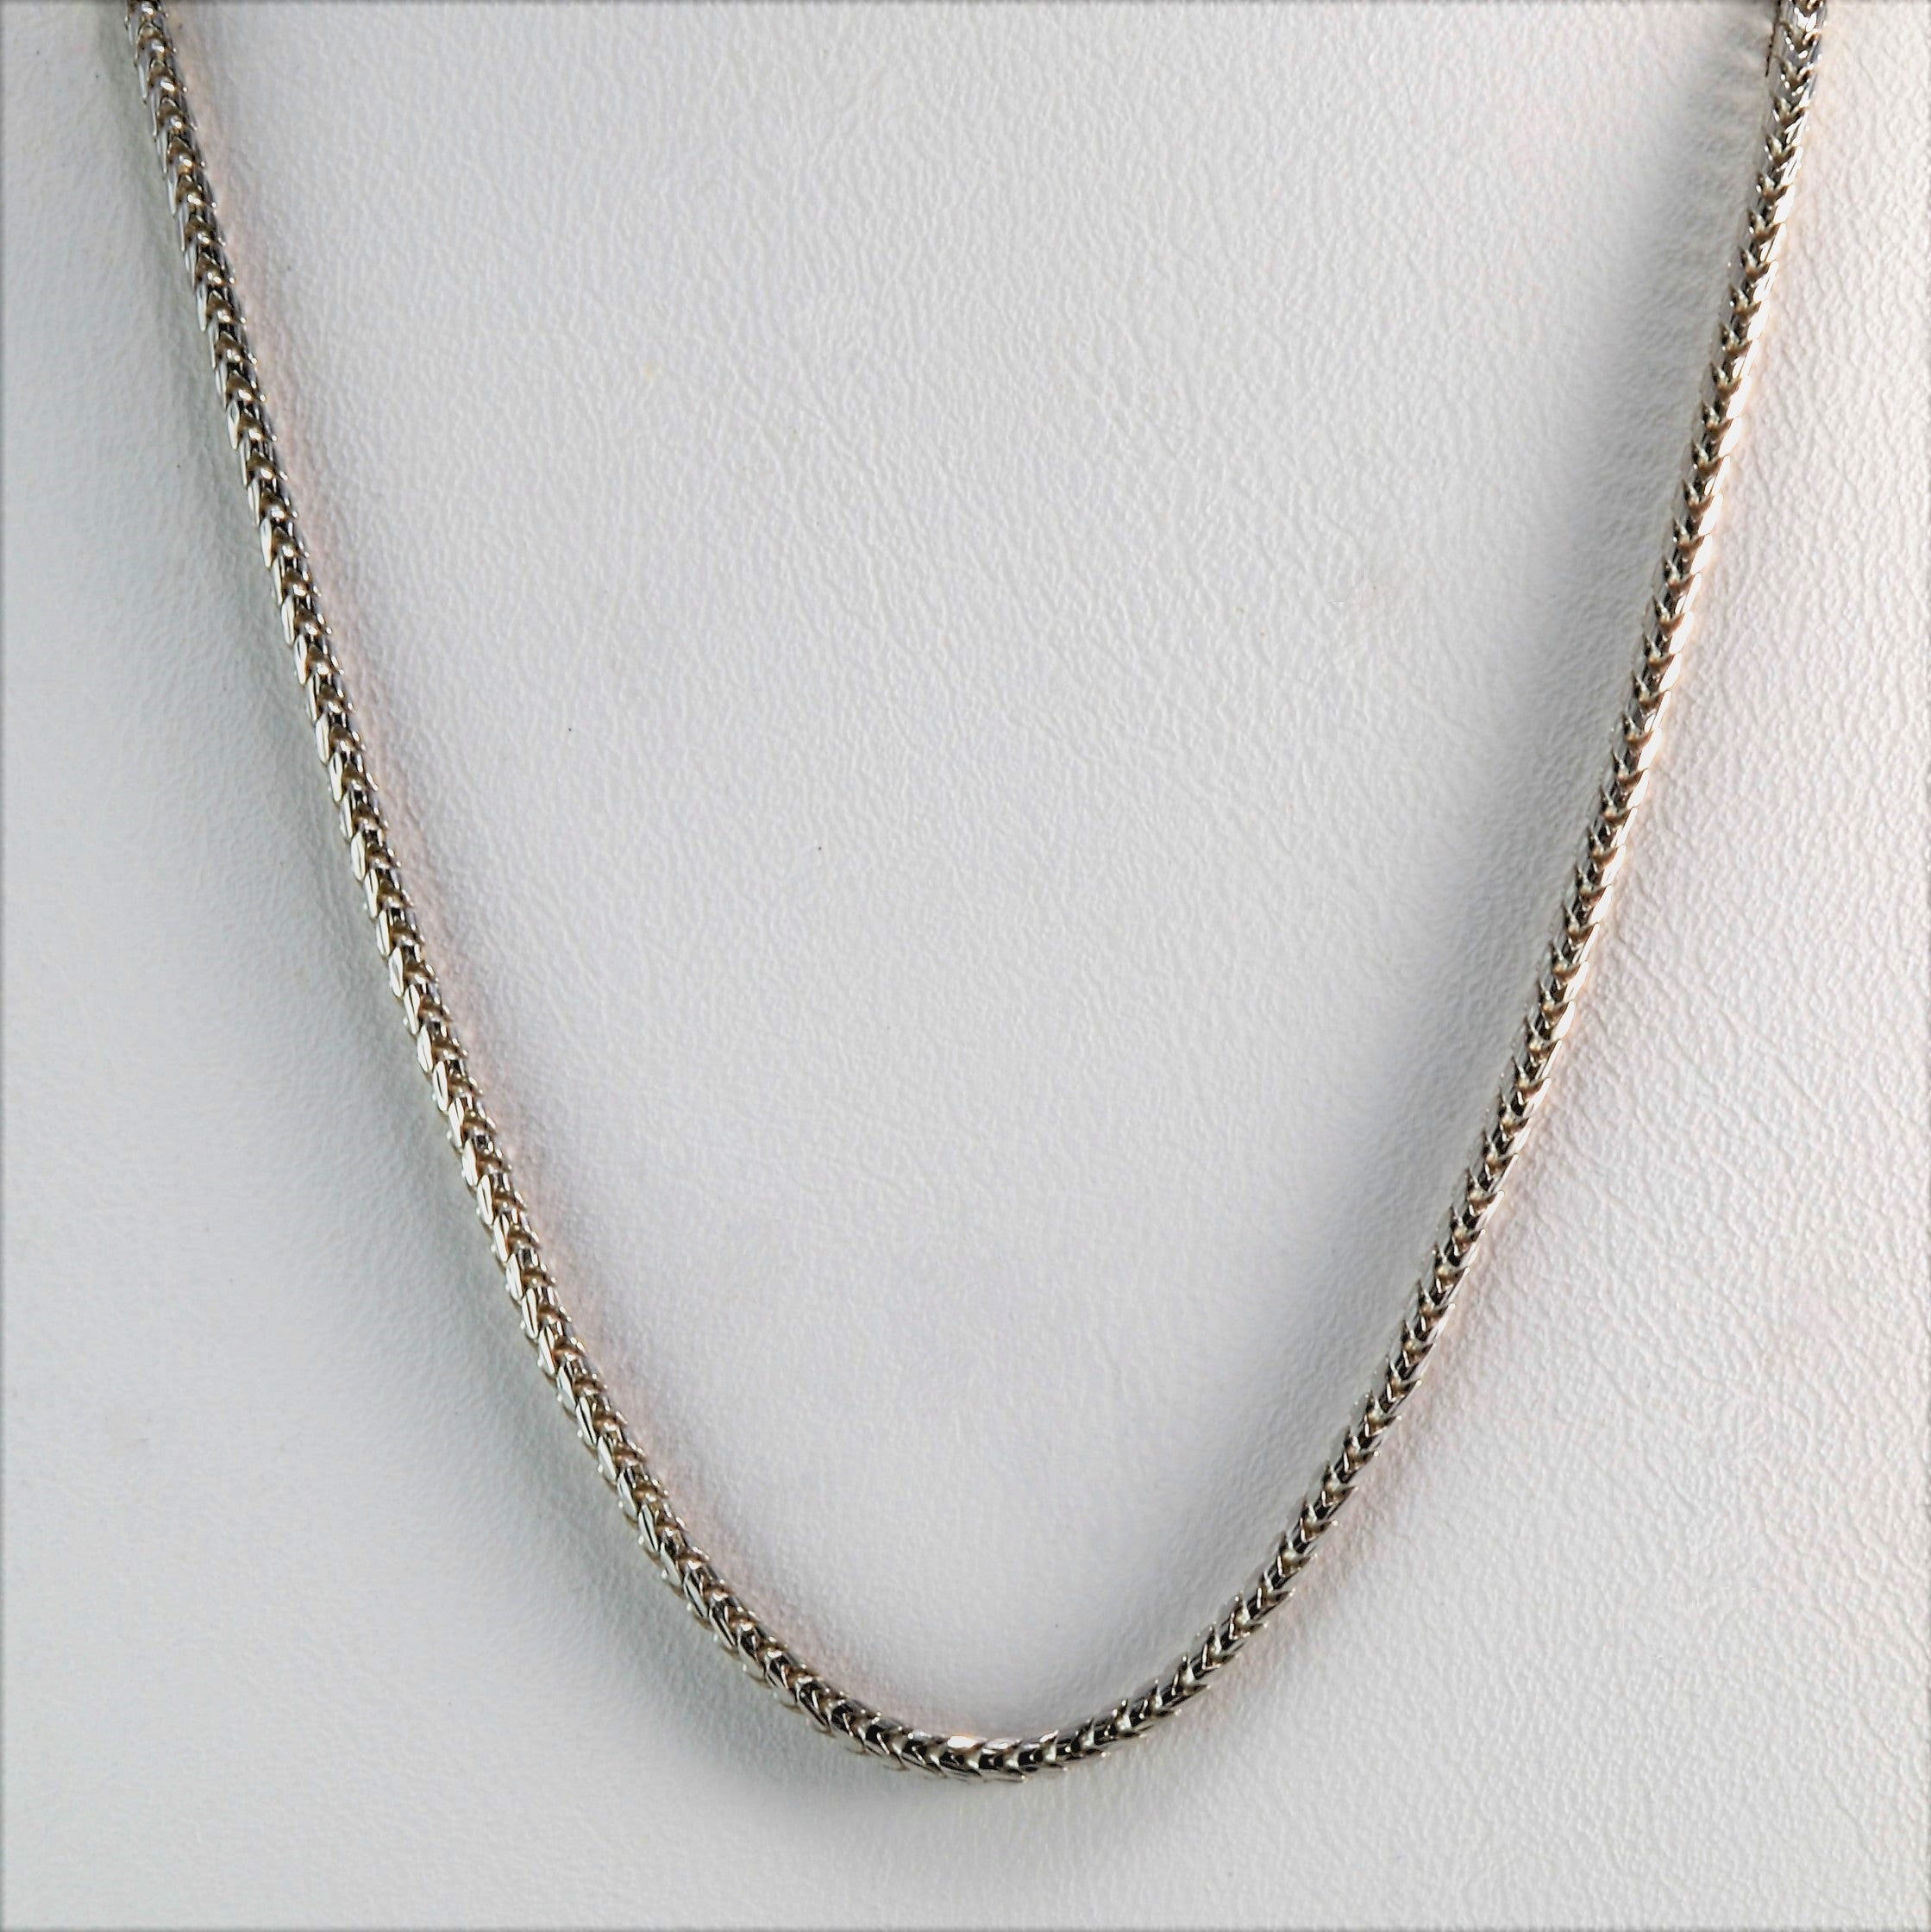 White Gold Wheat Chain | 30"